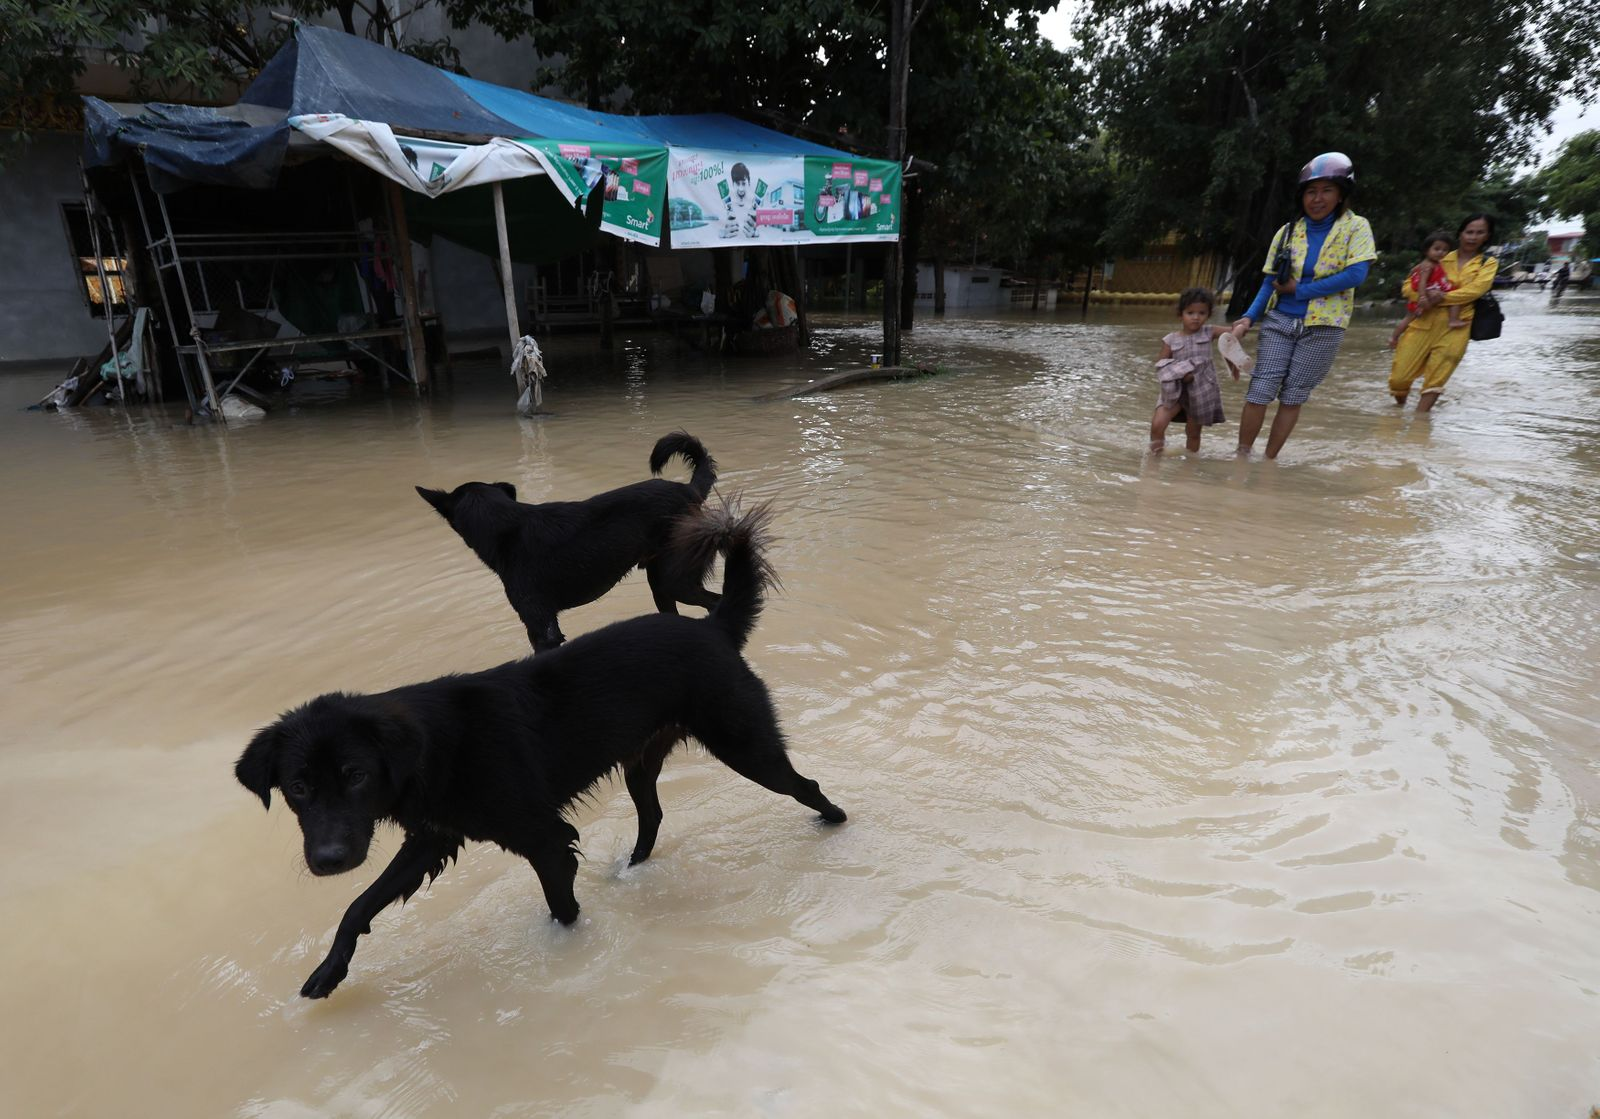 At least 11 killed, tens of thousands affected by floods in Cambodia, Phnom Penh - 14 Oct 2020